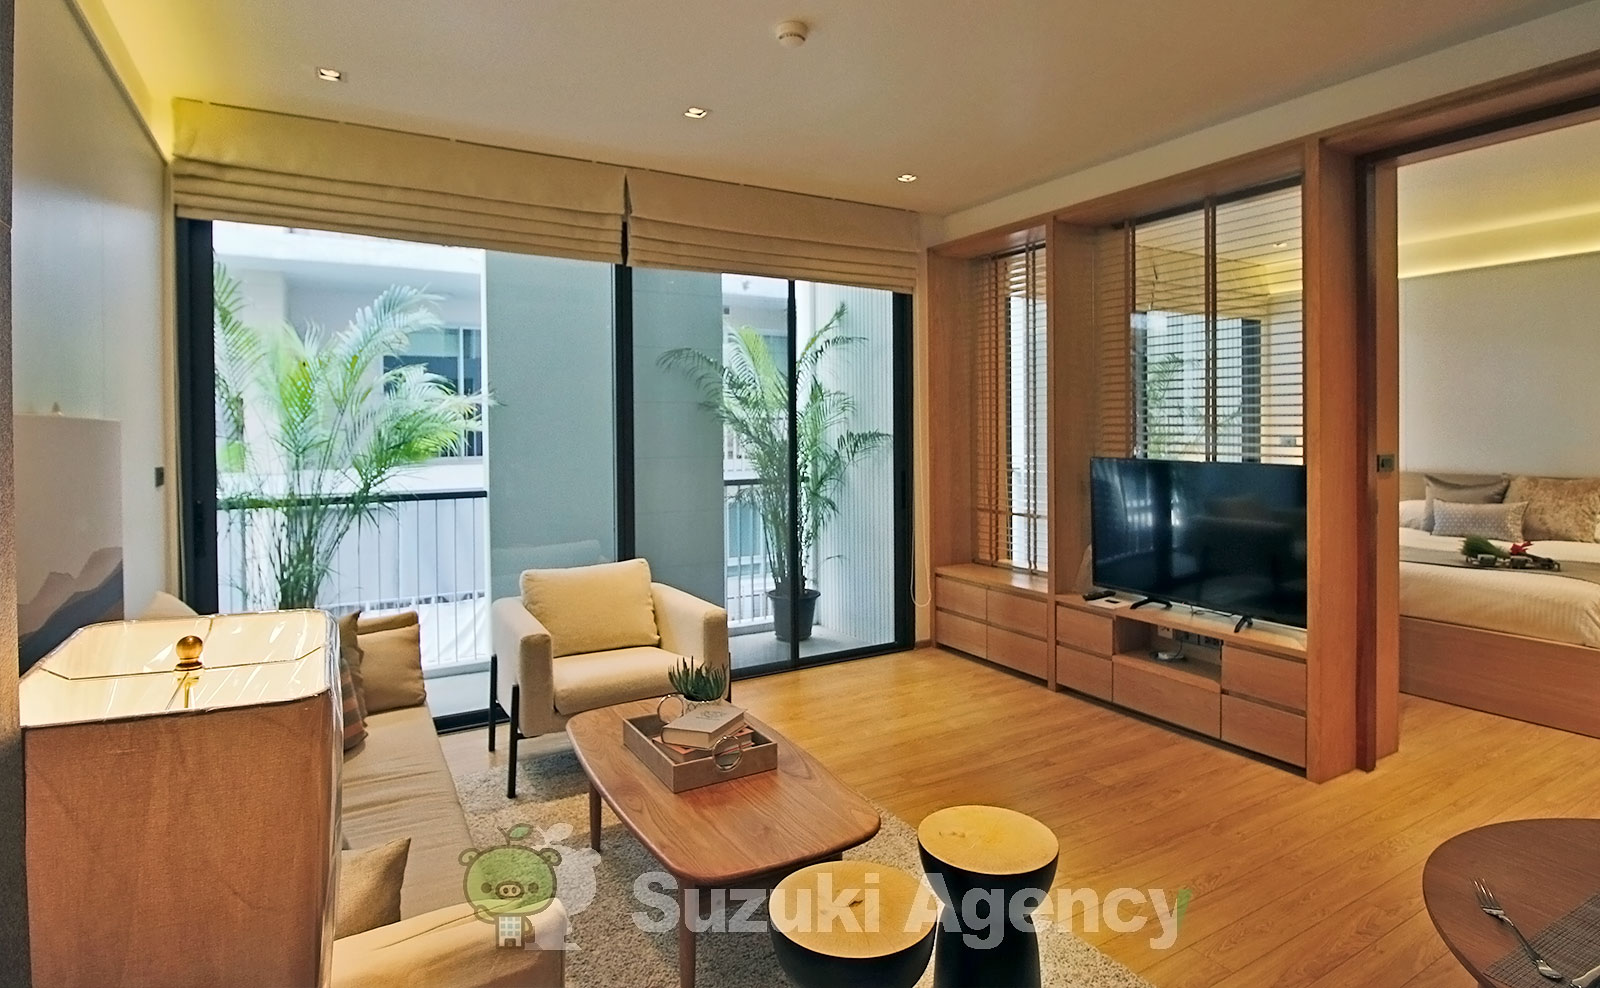 Jitimont Residence:1Bed Room Photos No.1